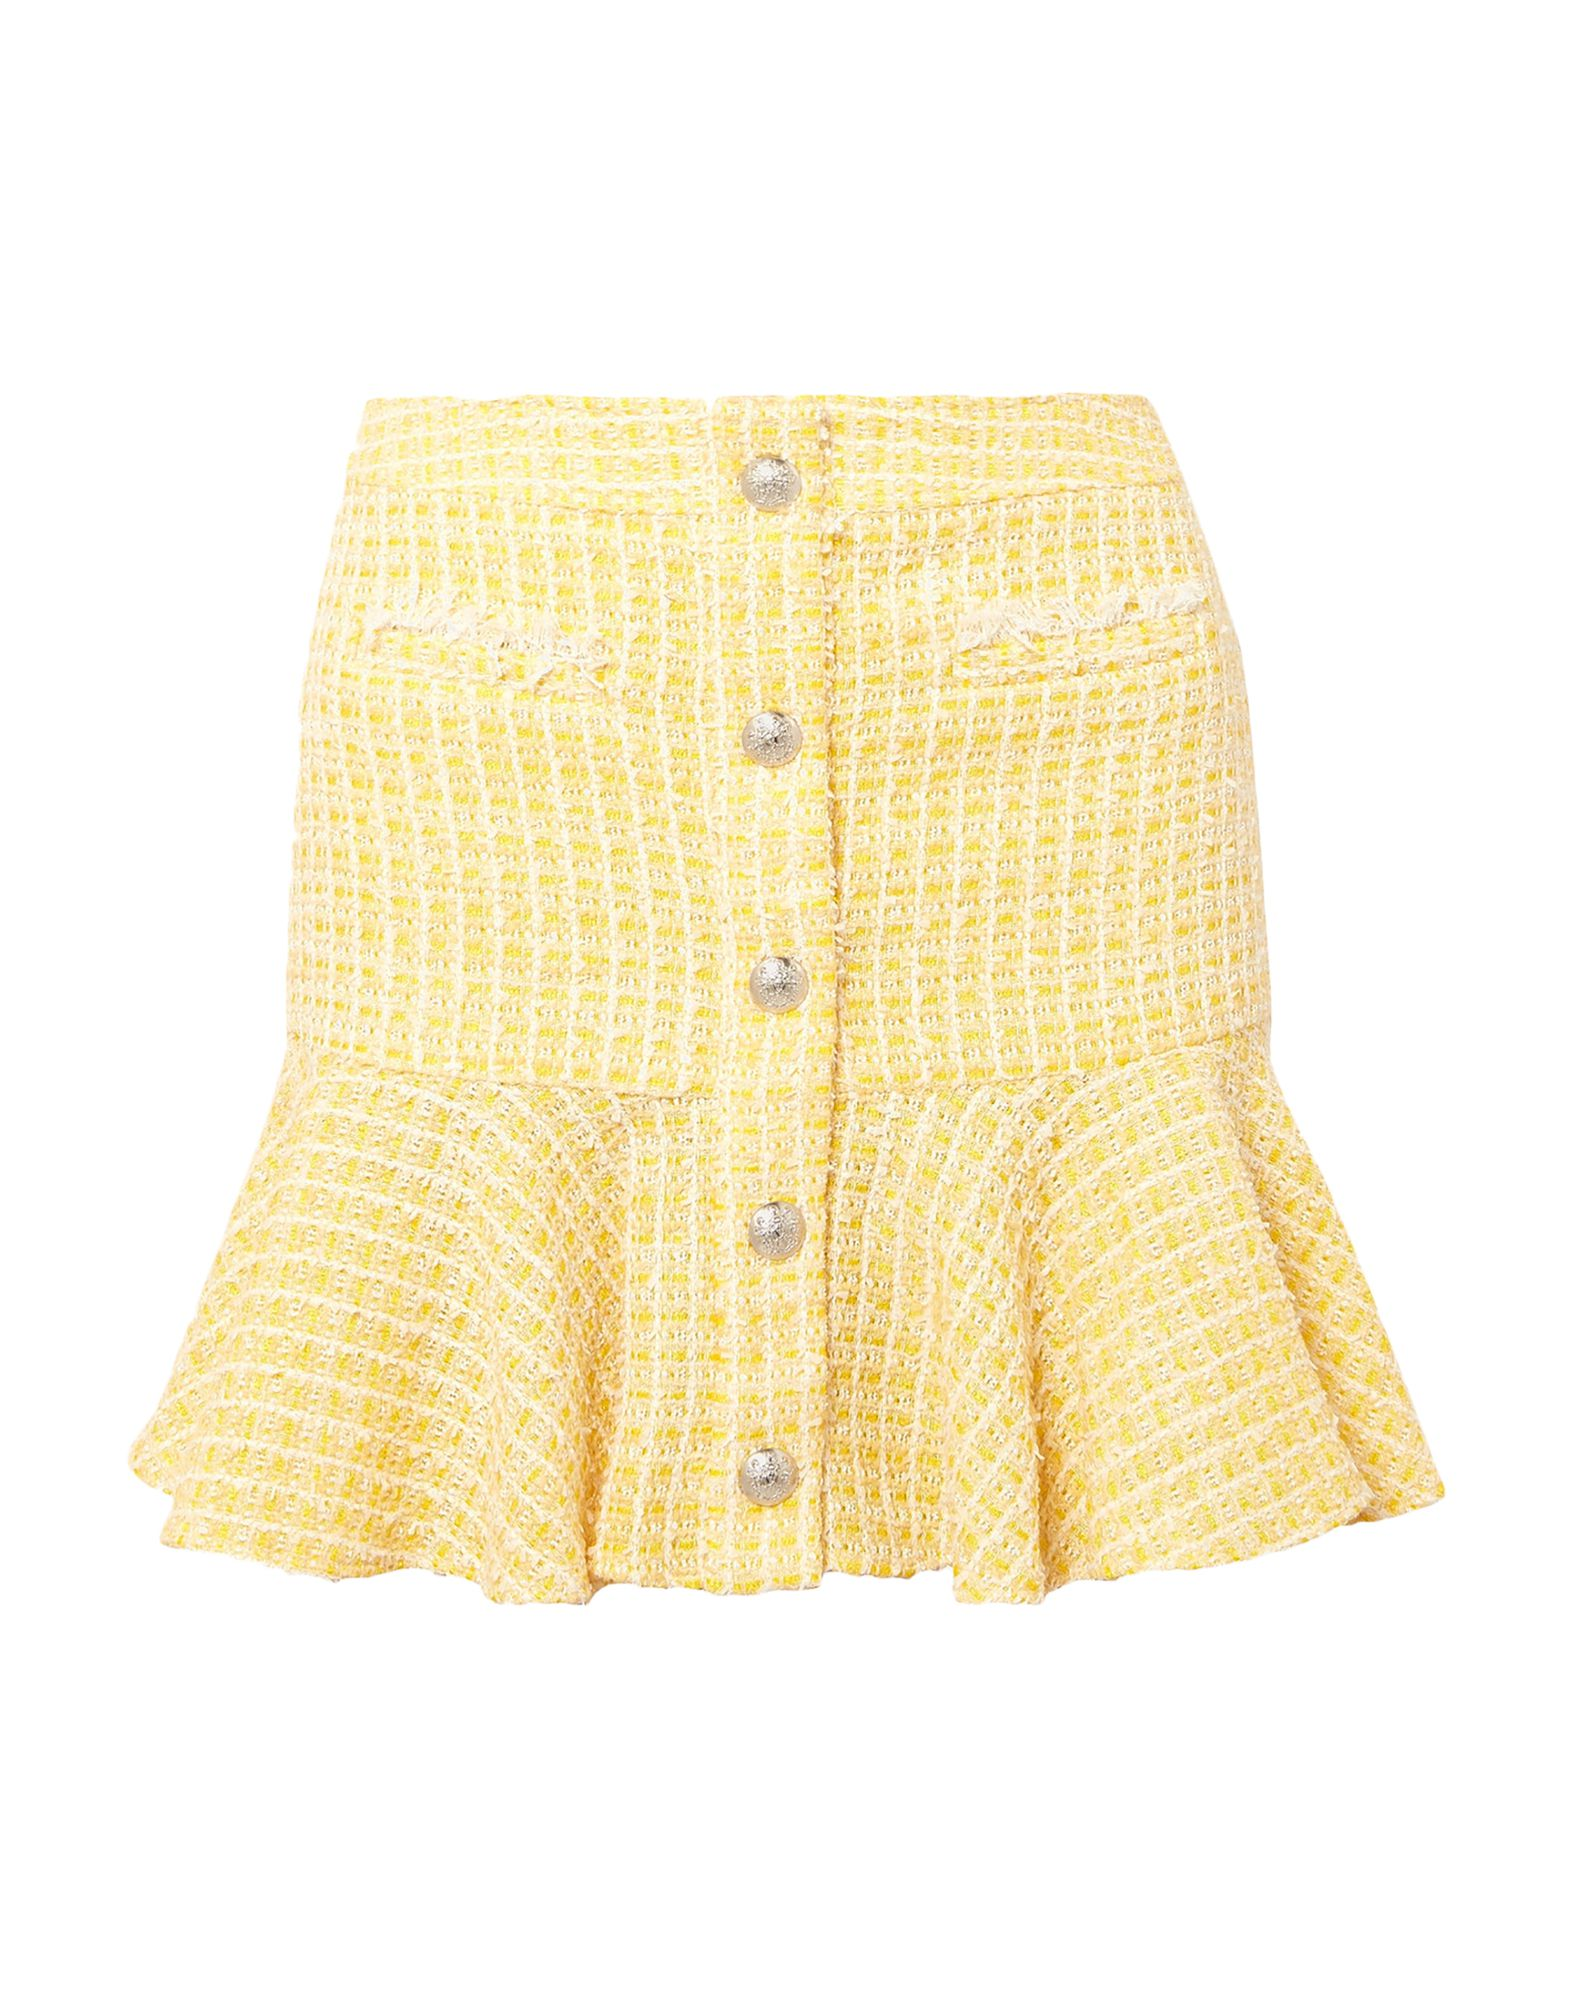 VERONICA BEARD Mini skirts. tweed, no appliqués, two-tone, mid rise, rear closure, hook-and-bar, zip, fully lined. 40% Cotton, 29% Polyester, 15% Viscose, 9% Nylon, 7% Acrylic